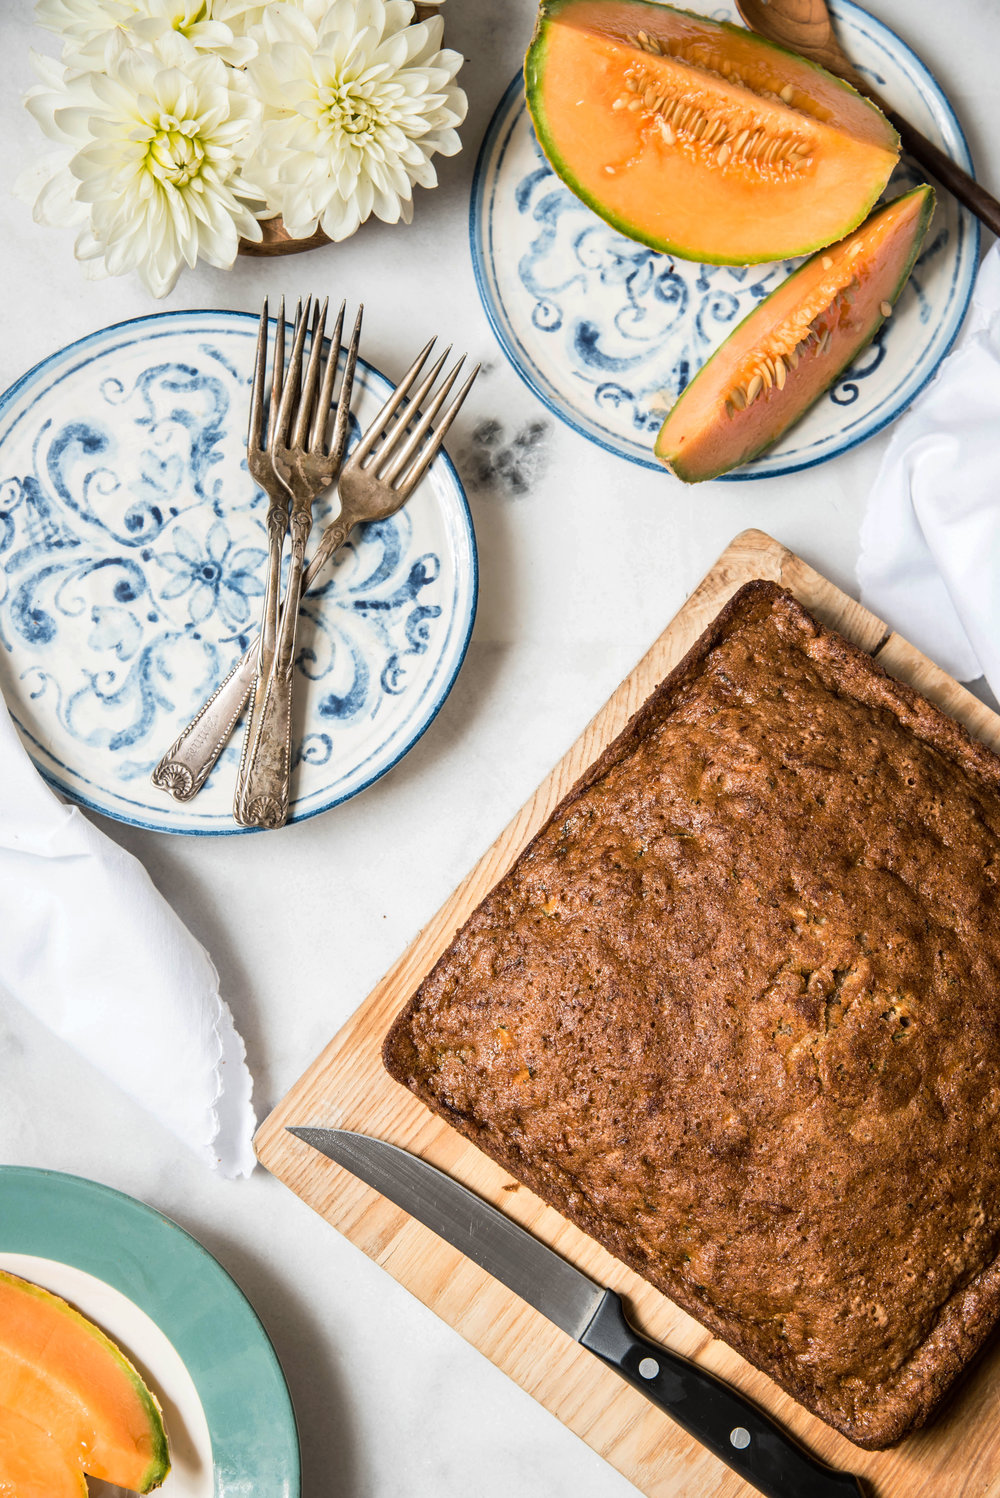 ROSE & IVY Journal At the Market | Zucchini & Zucchini Ginger Bread